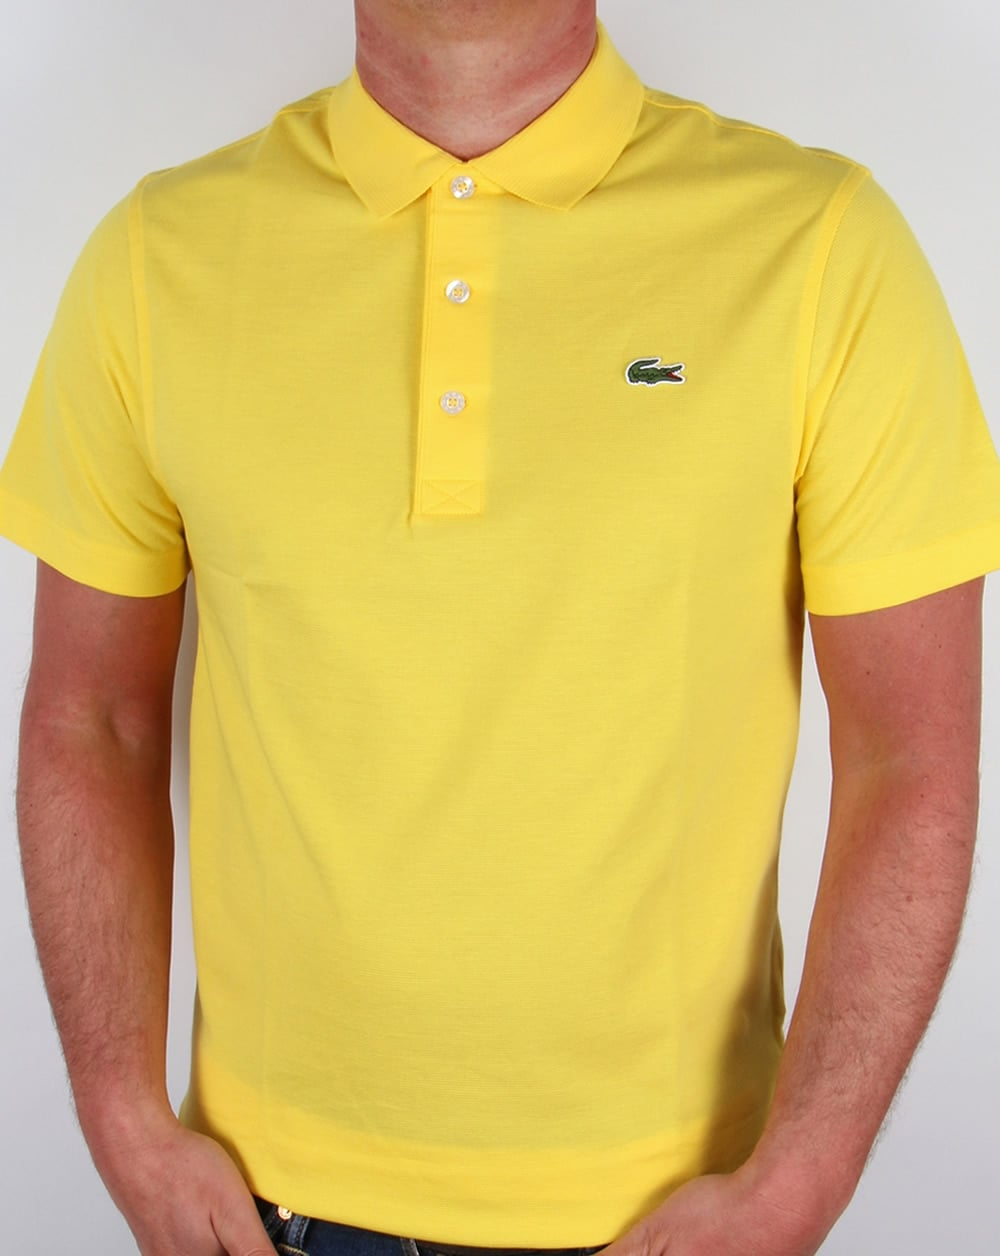 lacoste polo shirt yellow short sleeve retroold skool